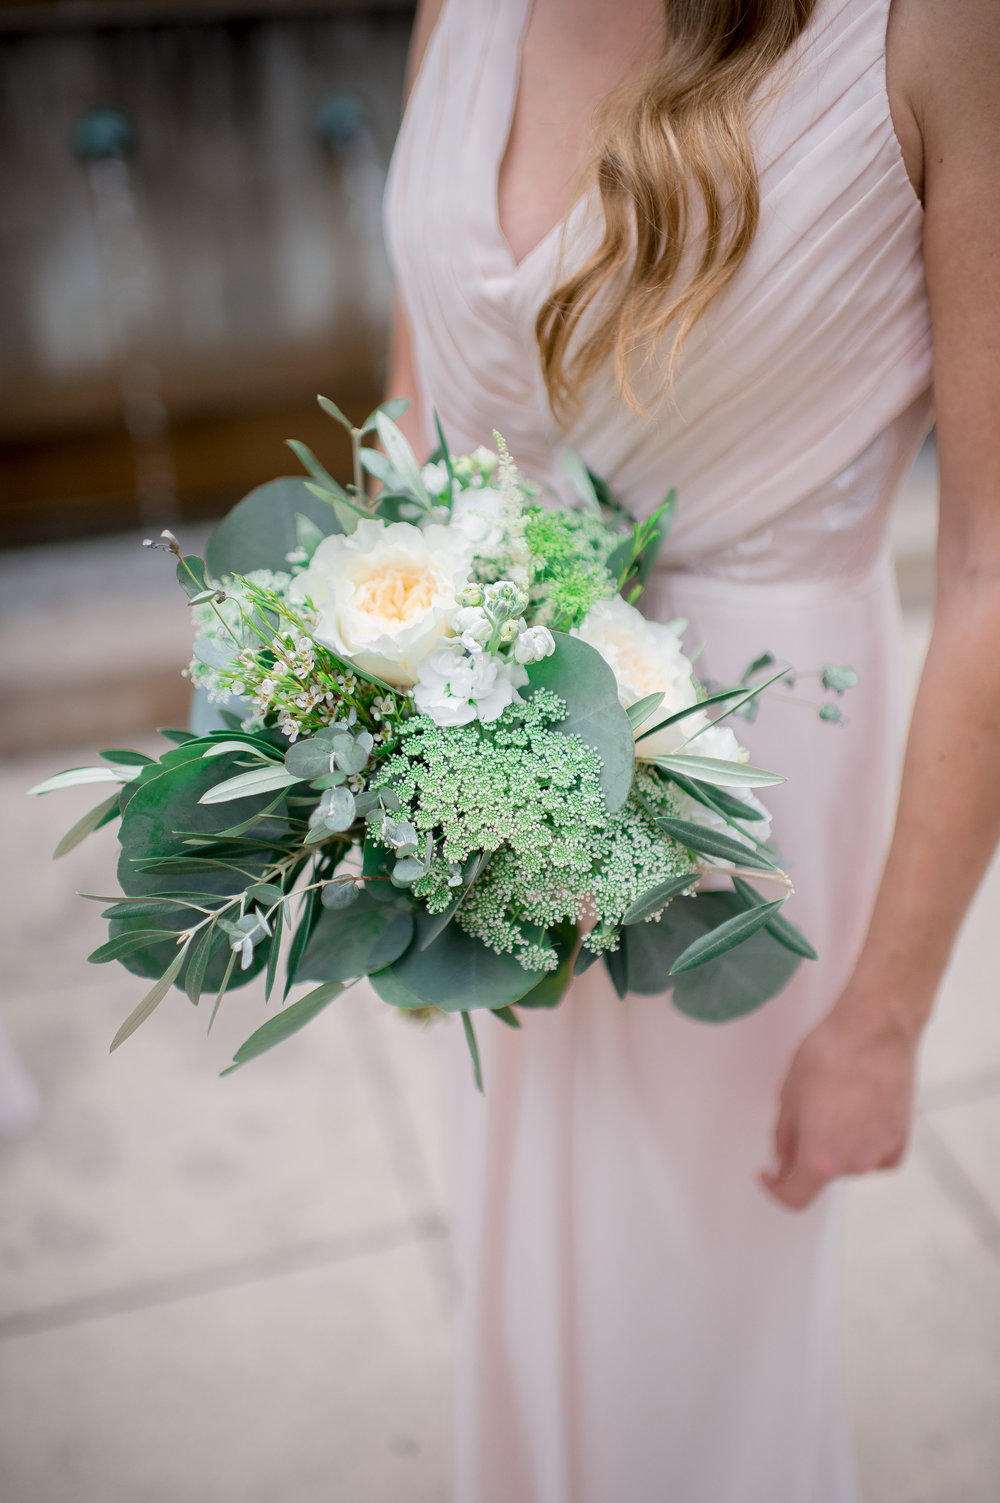 socal-wedding-consultant-best-wedding-planners-in-southern-california-cafe-pinot-wedding-planner113.jpg